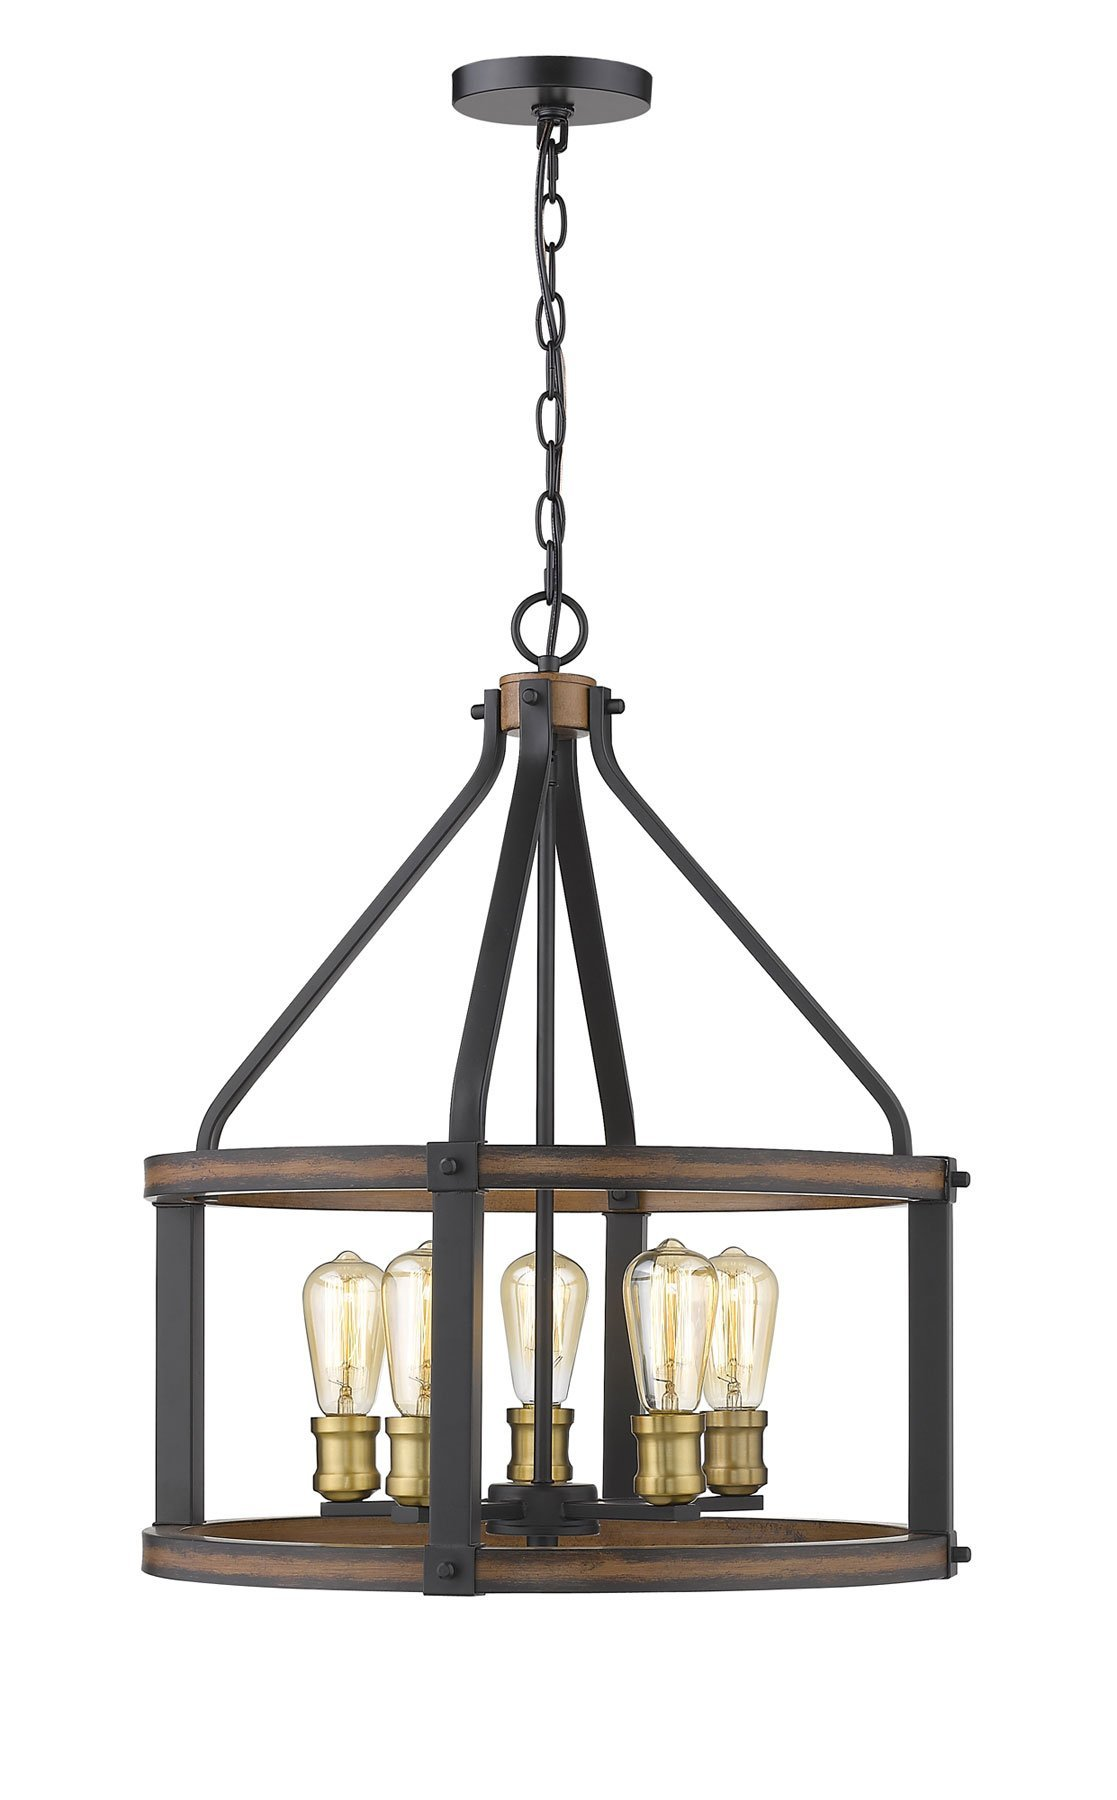 Light Pendant Rustic